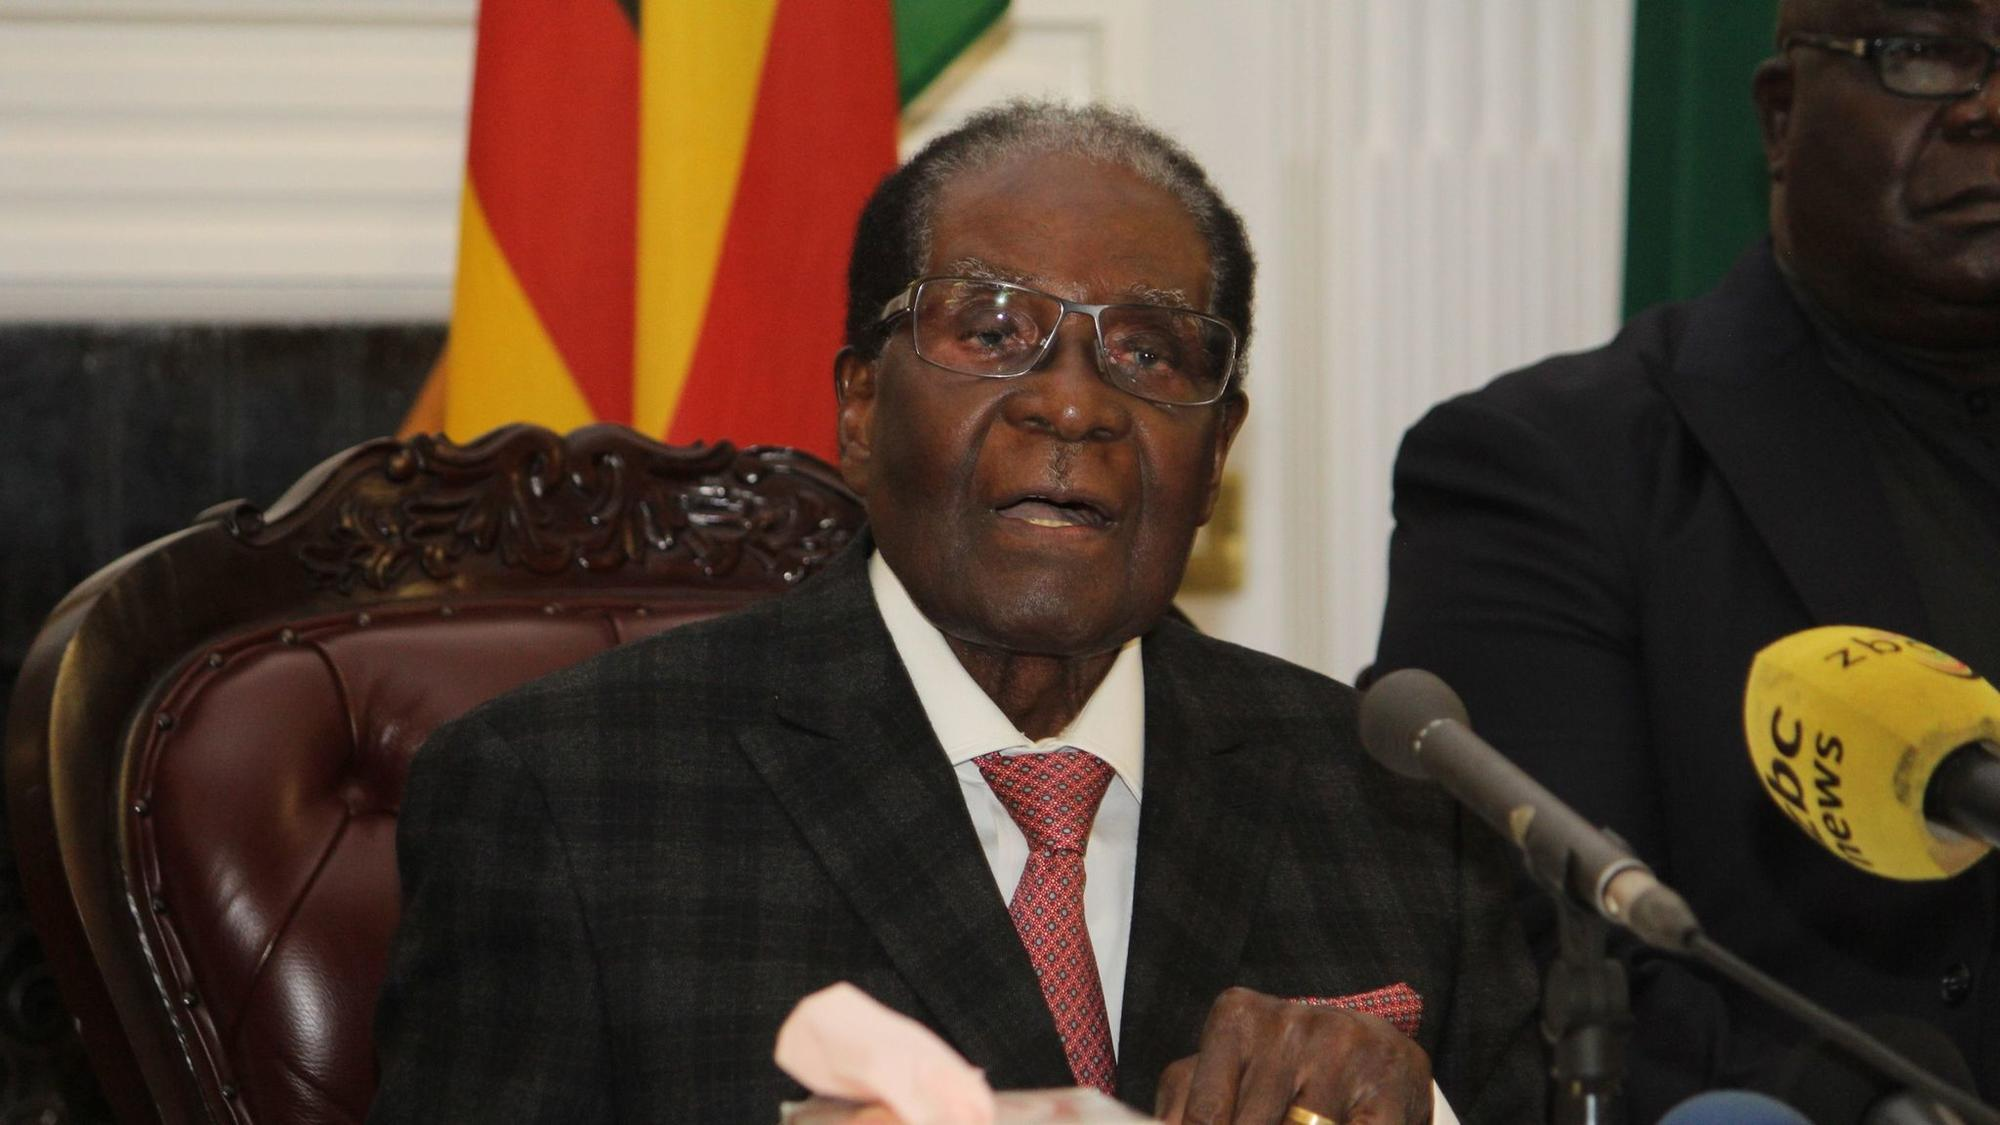 robert mugabe The decades-long rule of president robert mugabe appeared to be at an end wednesday after zimbabwe's military took over state television to announce that he was in custody.